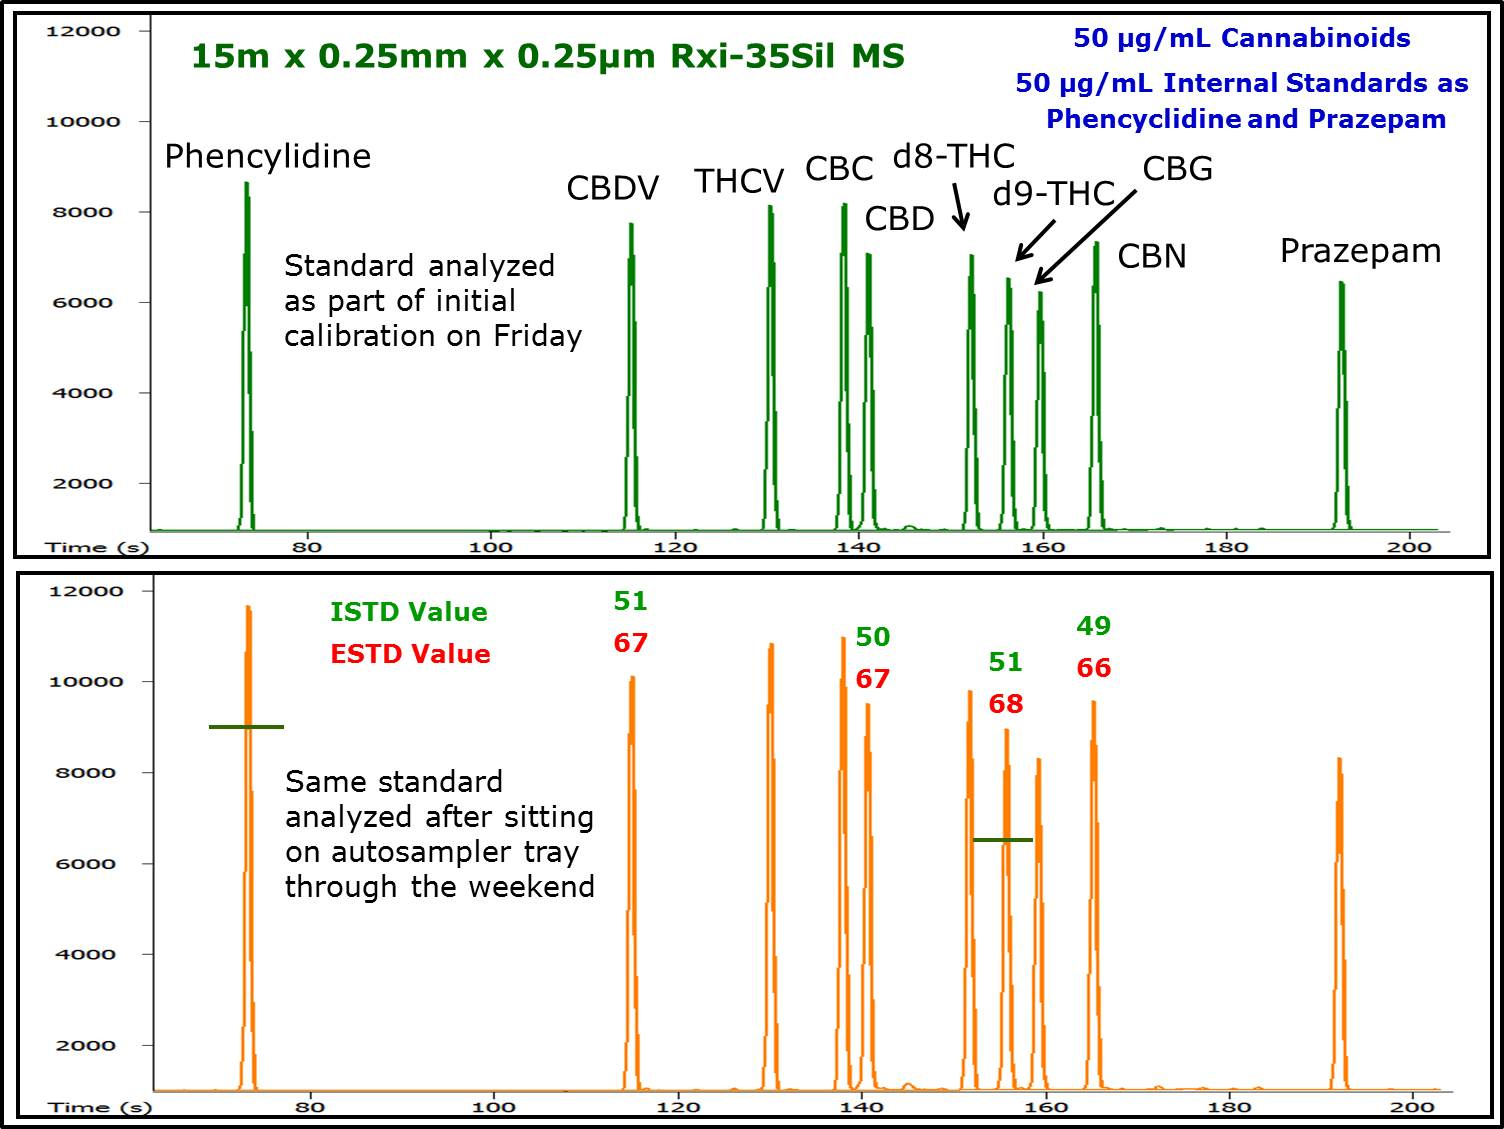 certificate of analysis - gc testing the quantity of the various cannabinoids